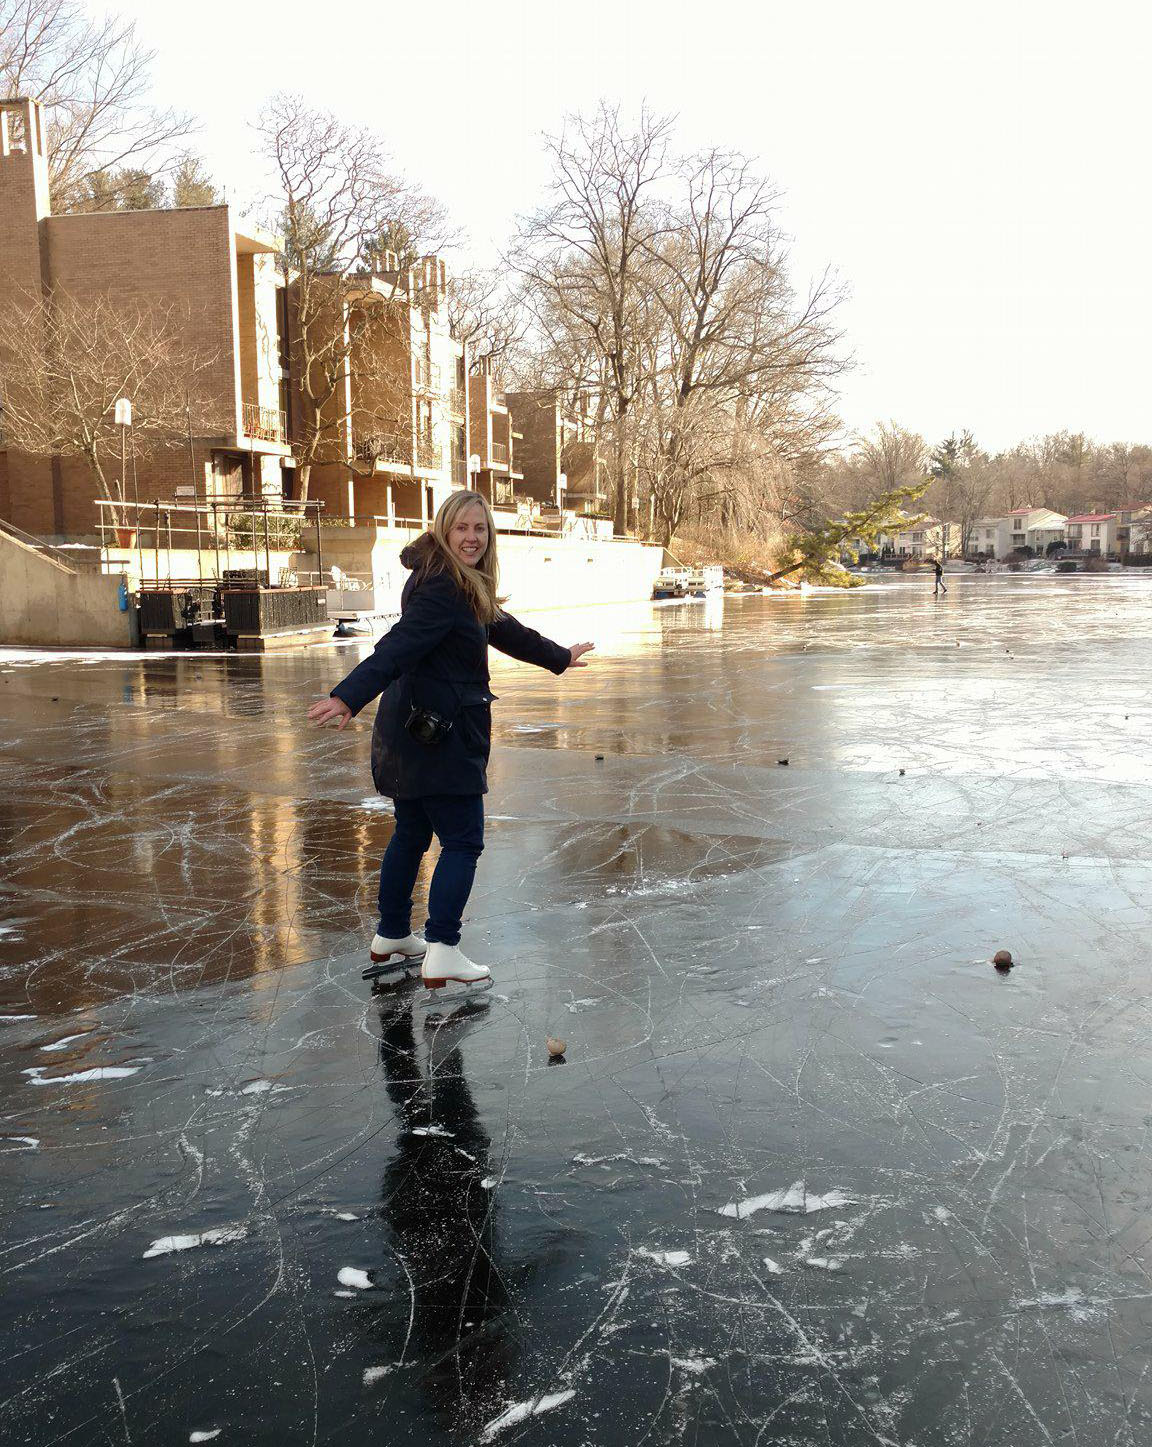 Ice skating on Lake Anne in Reston, Virginia